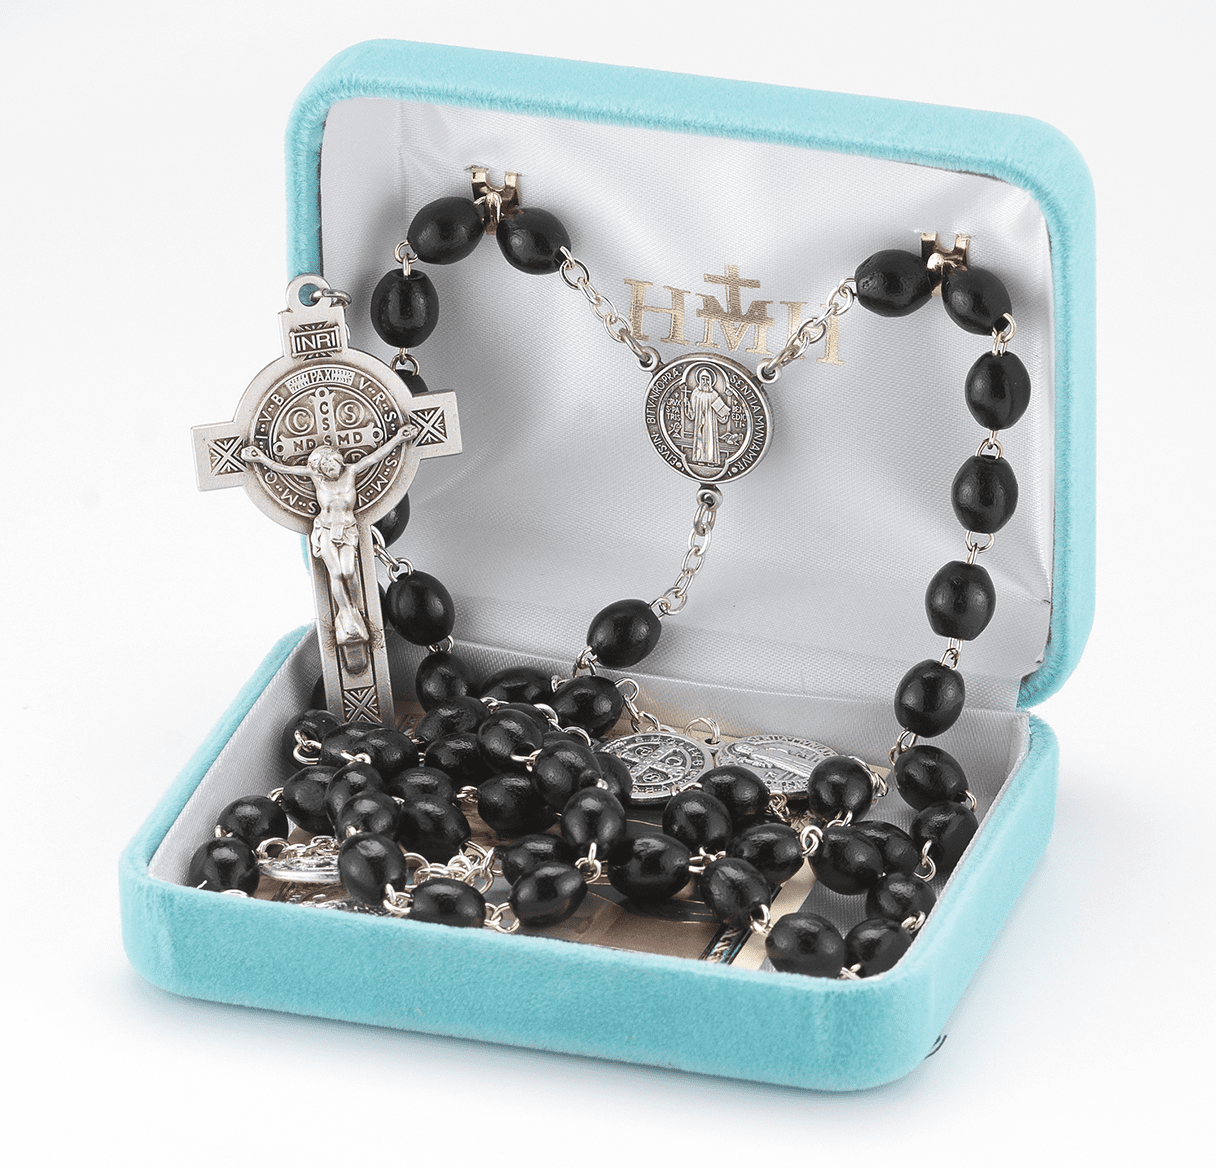 Saint Benedict Sterling Silver Boxwood Rosary by HMH Religious